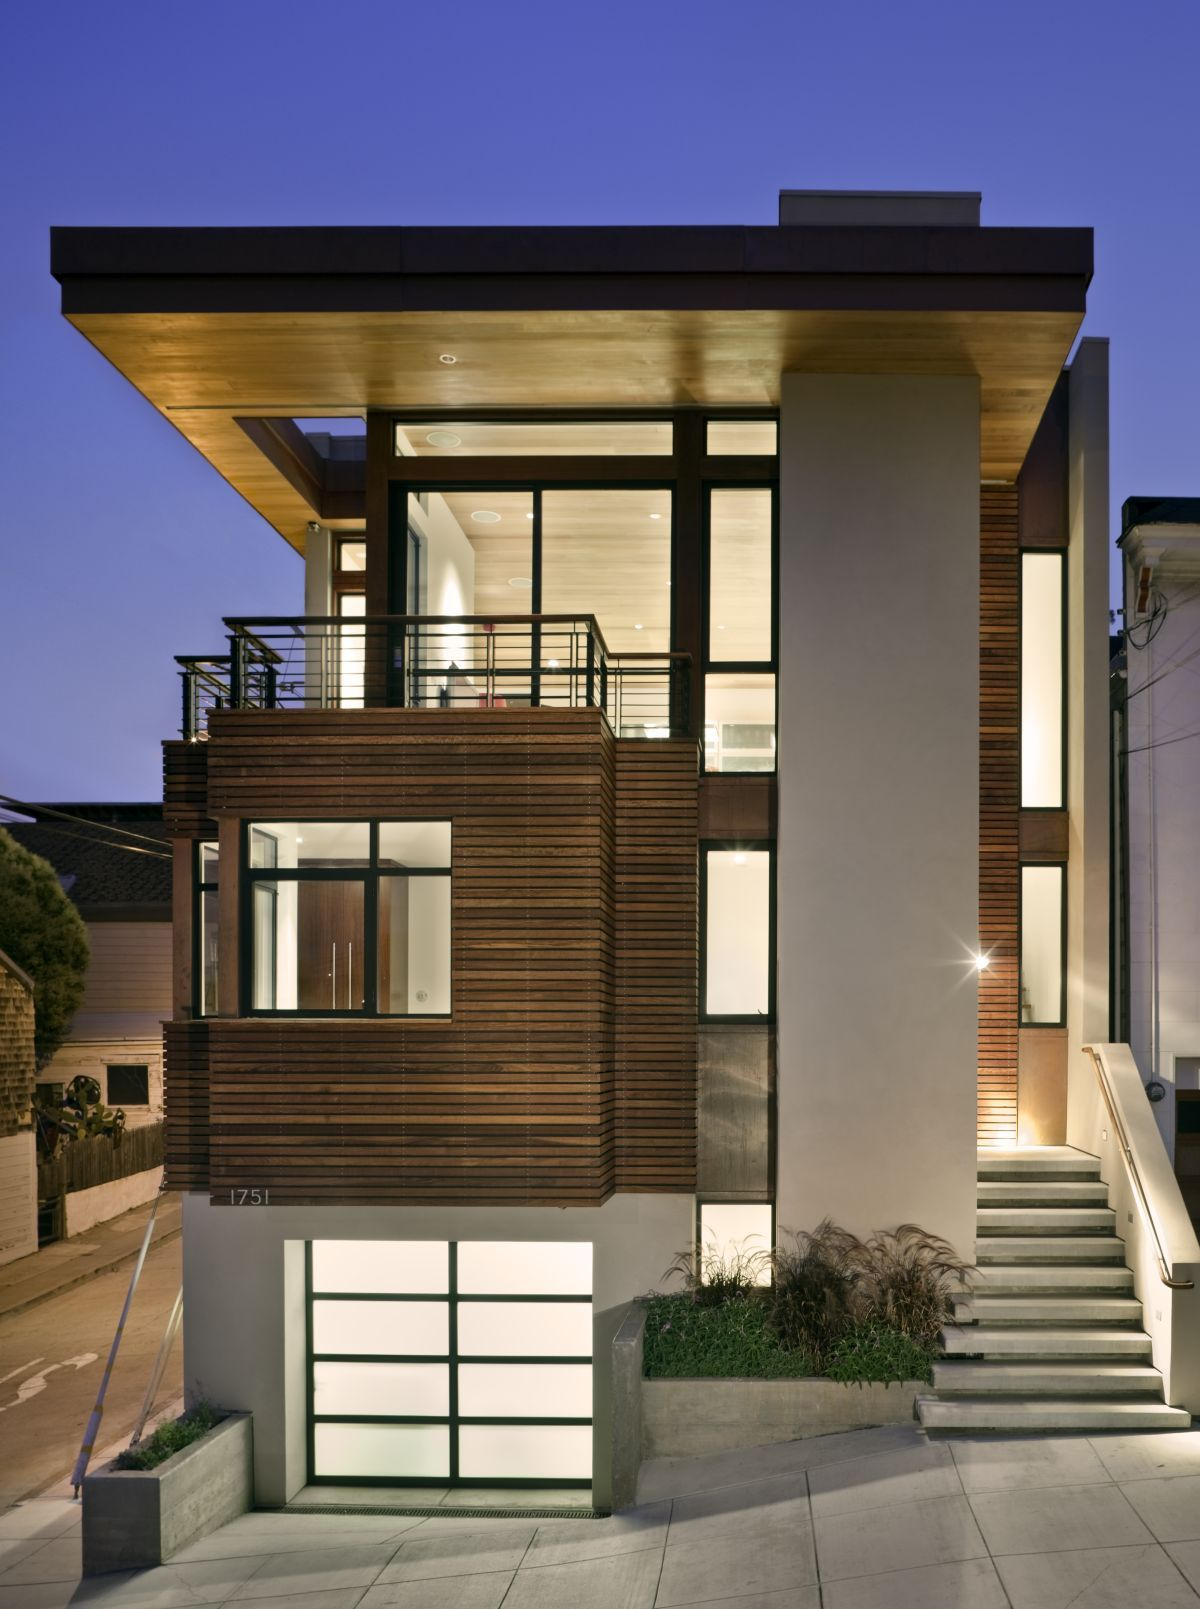 House Design Ideas >> Contemporary Home Exterior Design Ideas Home Decor House Design